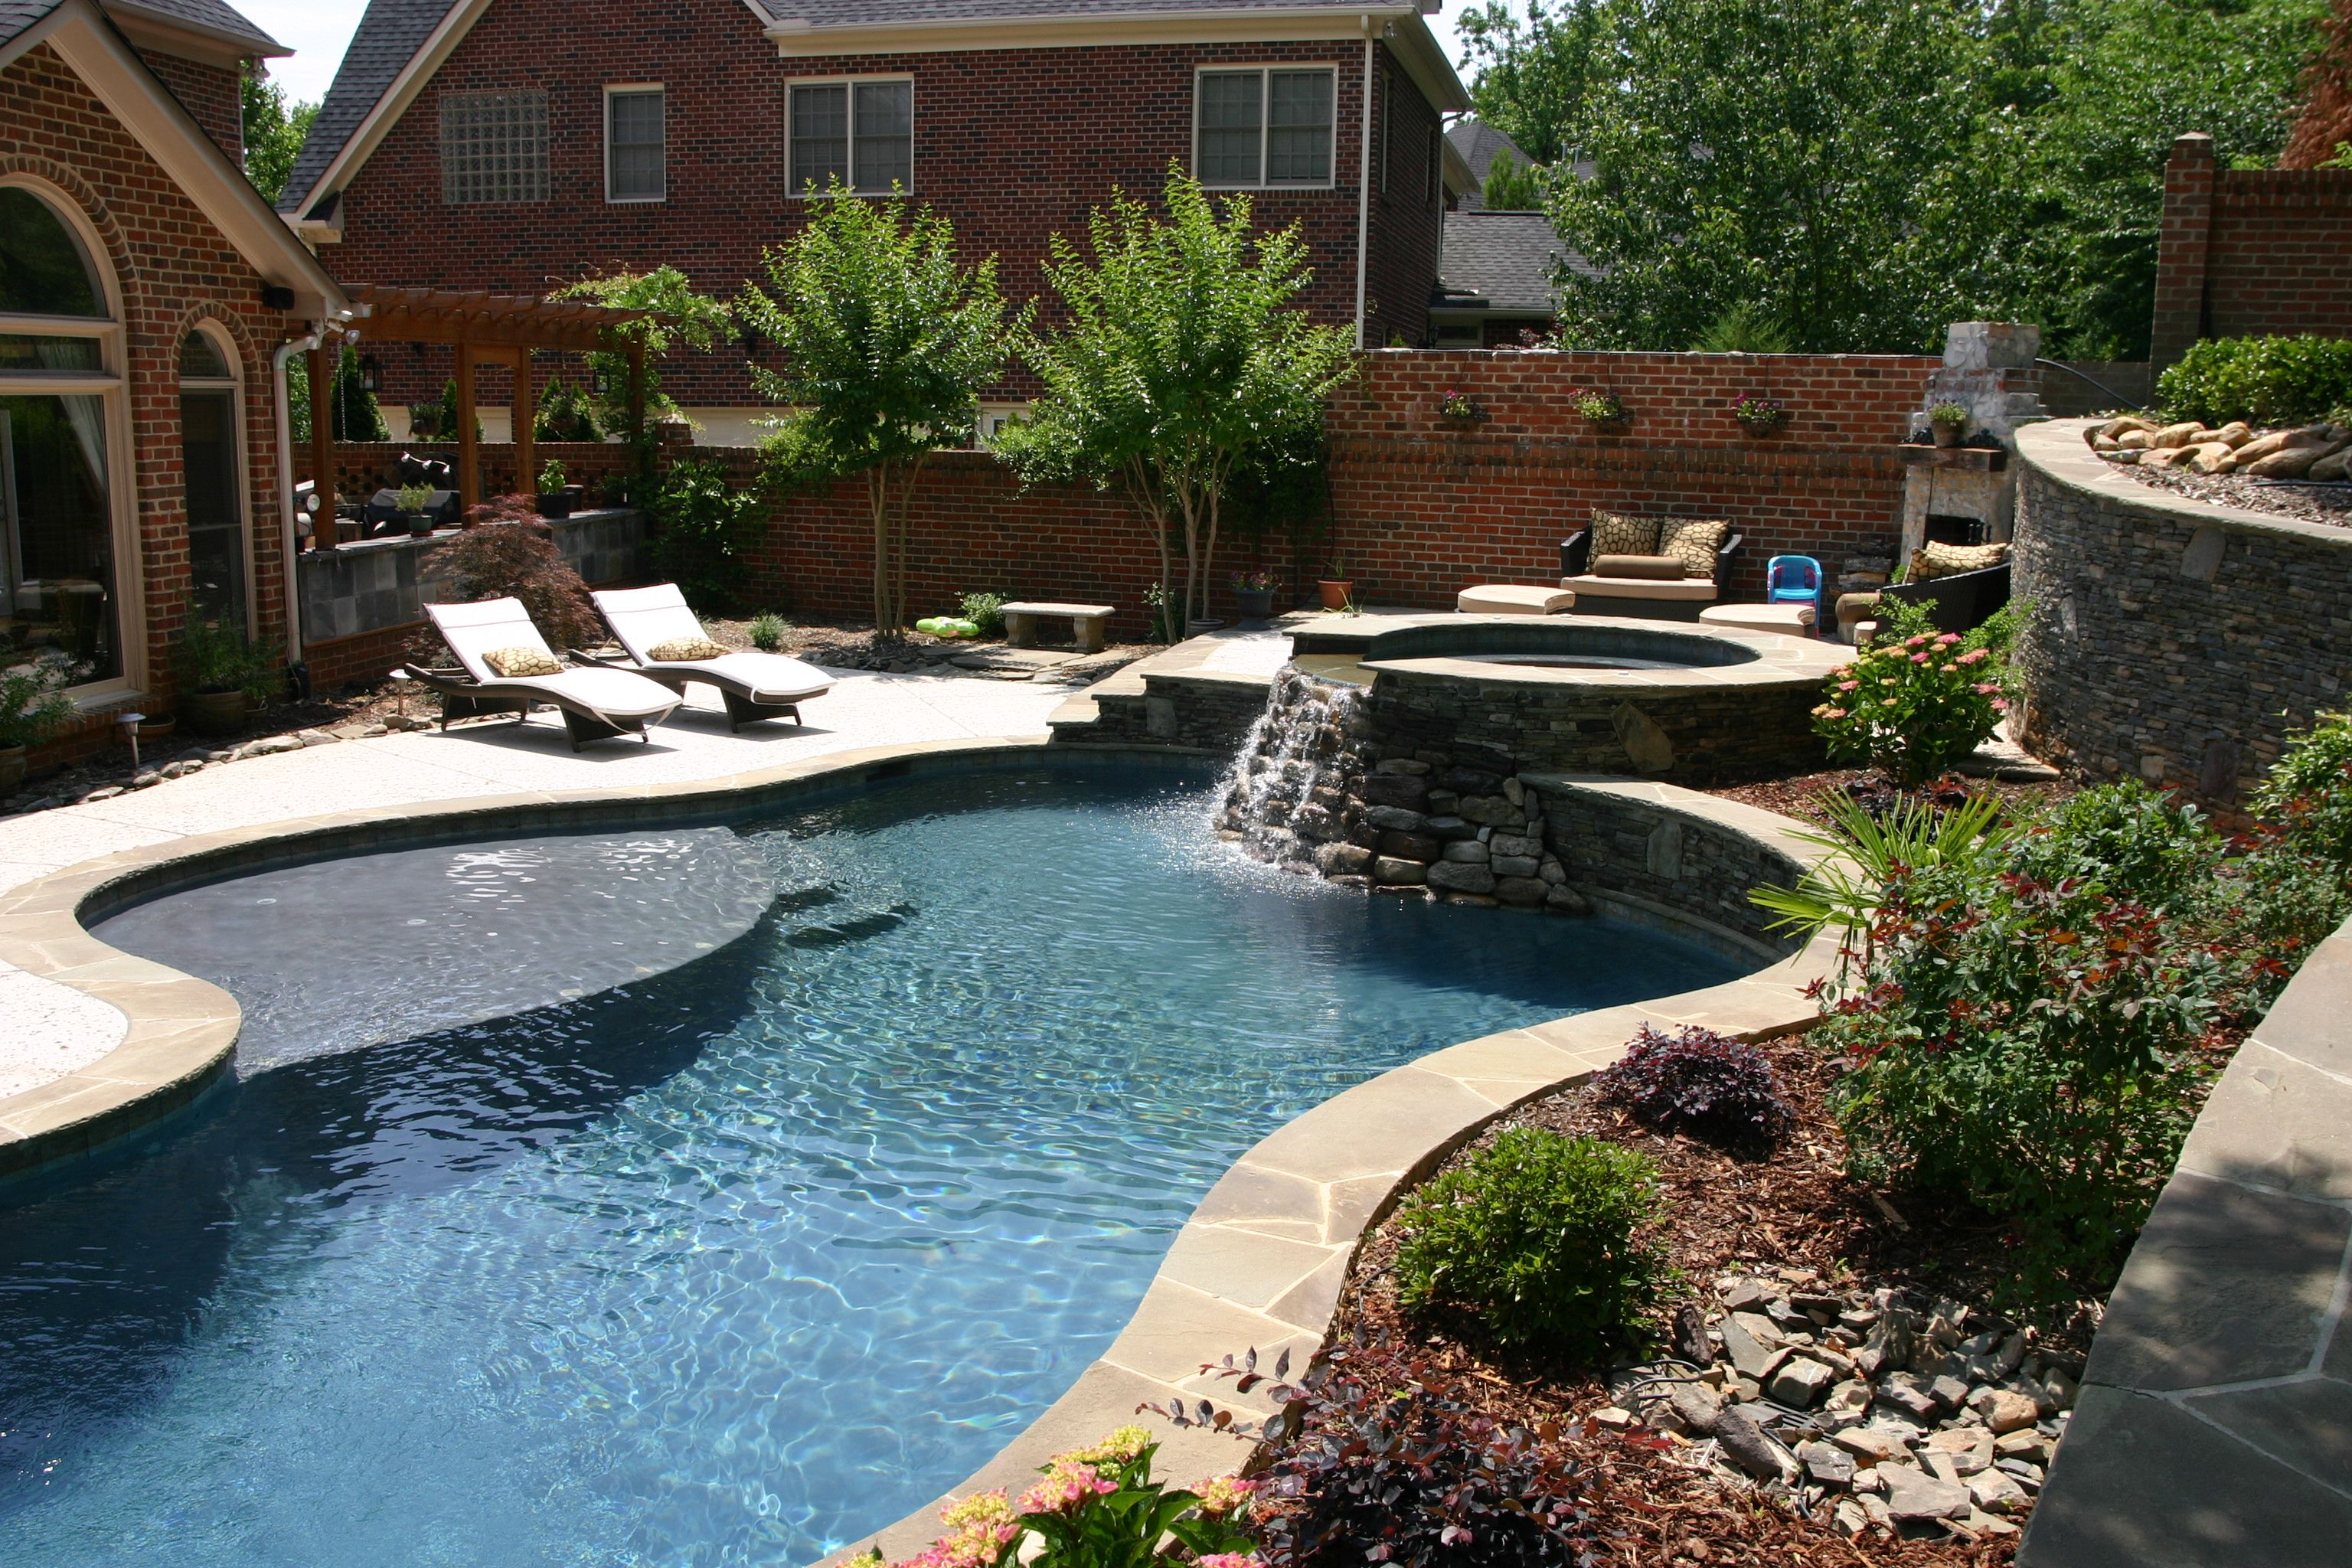 Freeform pool & spa combo with rock waterfall in 2020 ... |Small Freeform Pools With Waterfalls